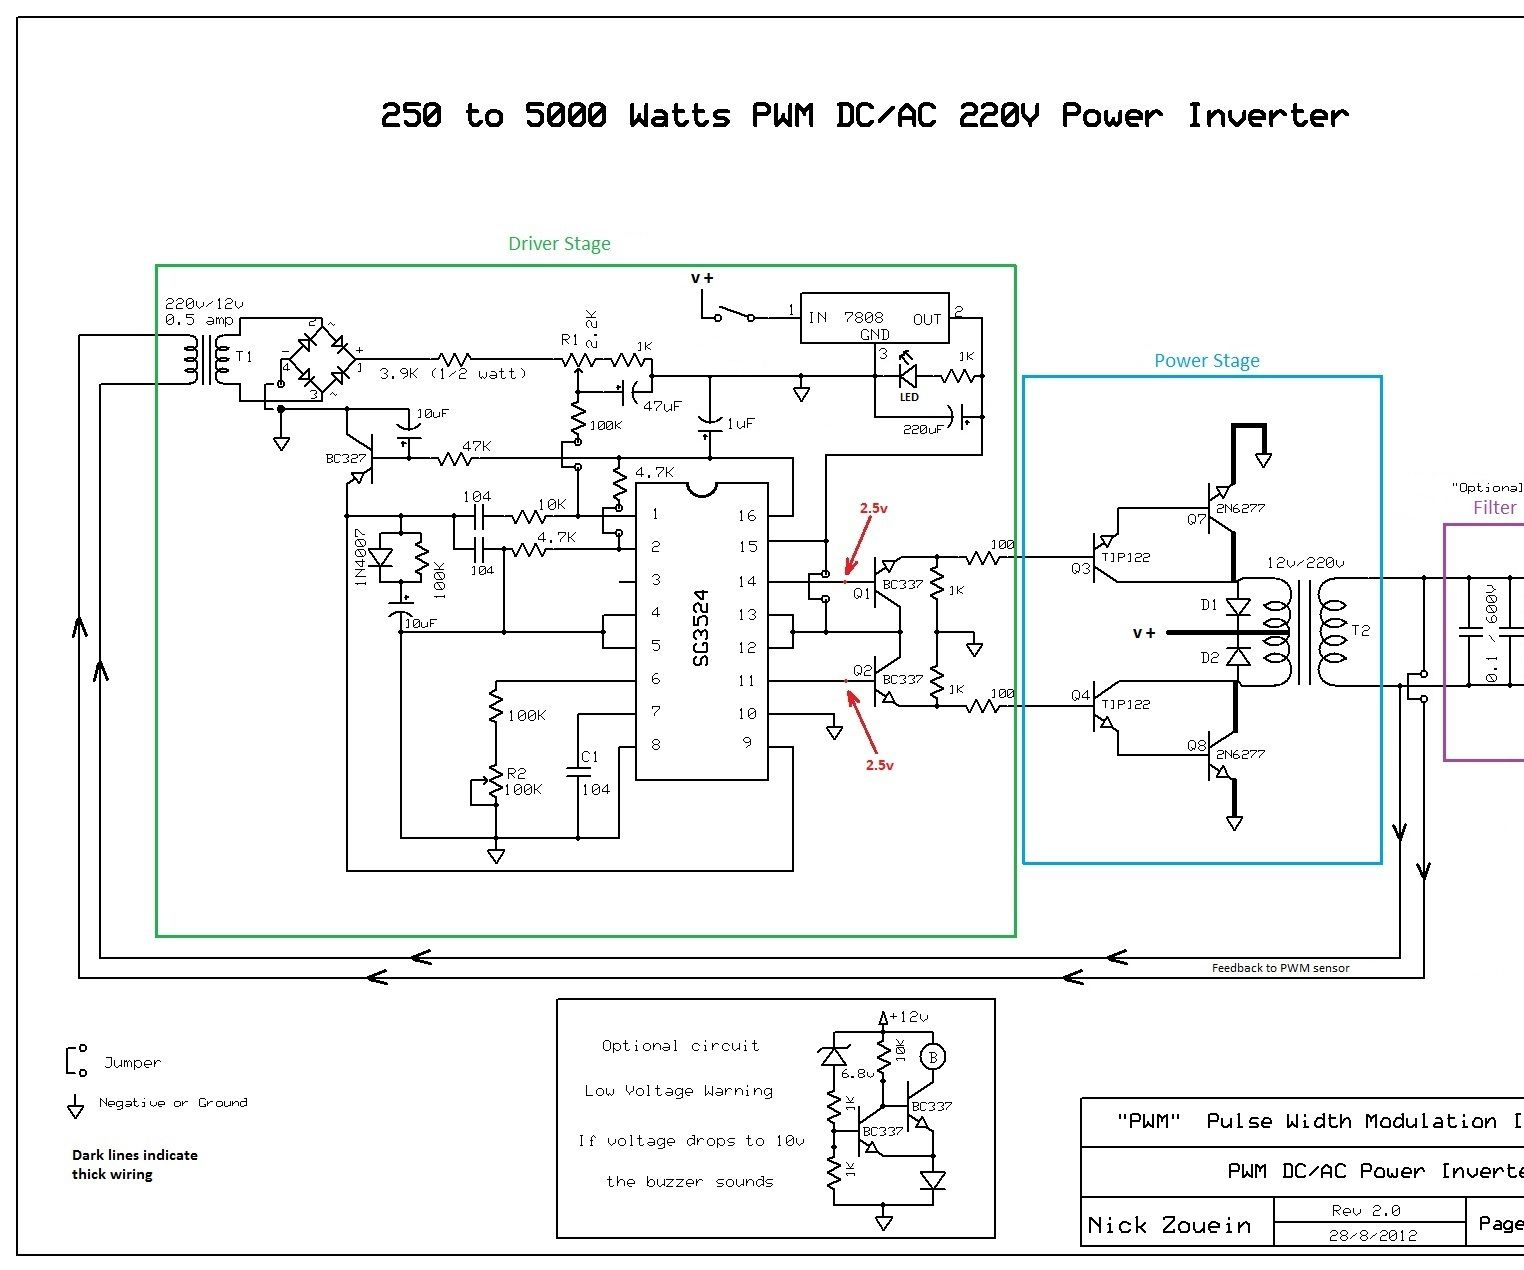 hight resolution of 250 to 5000 watts pwm dc ac 220v power inverter dc wiring schematic